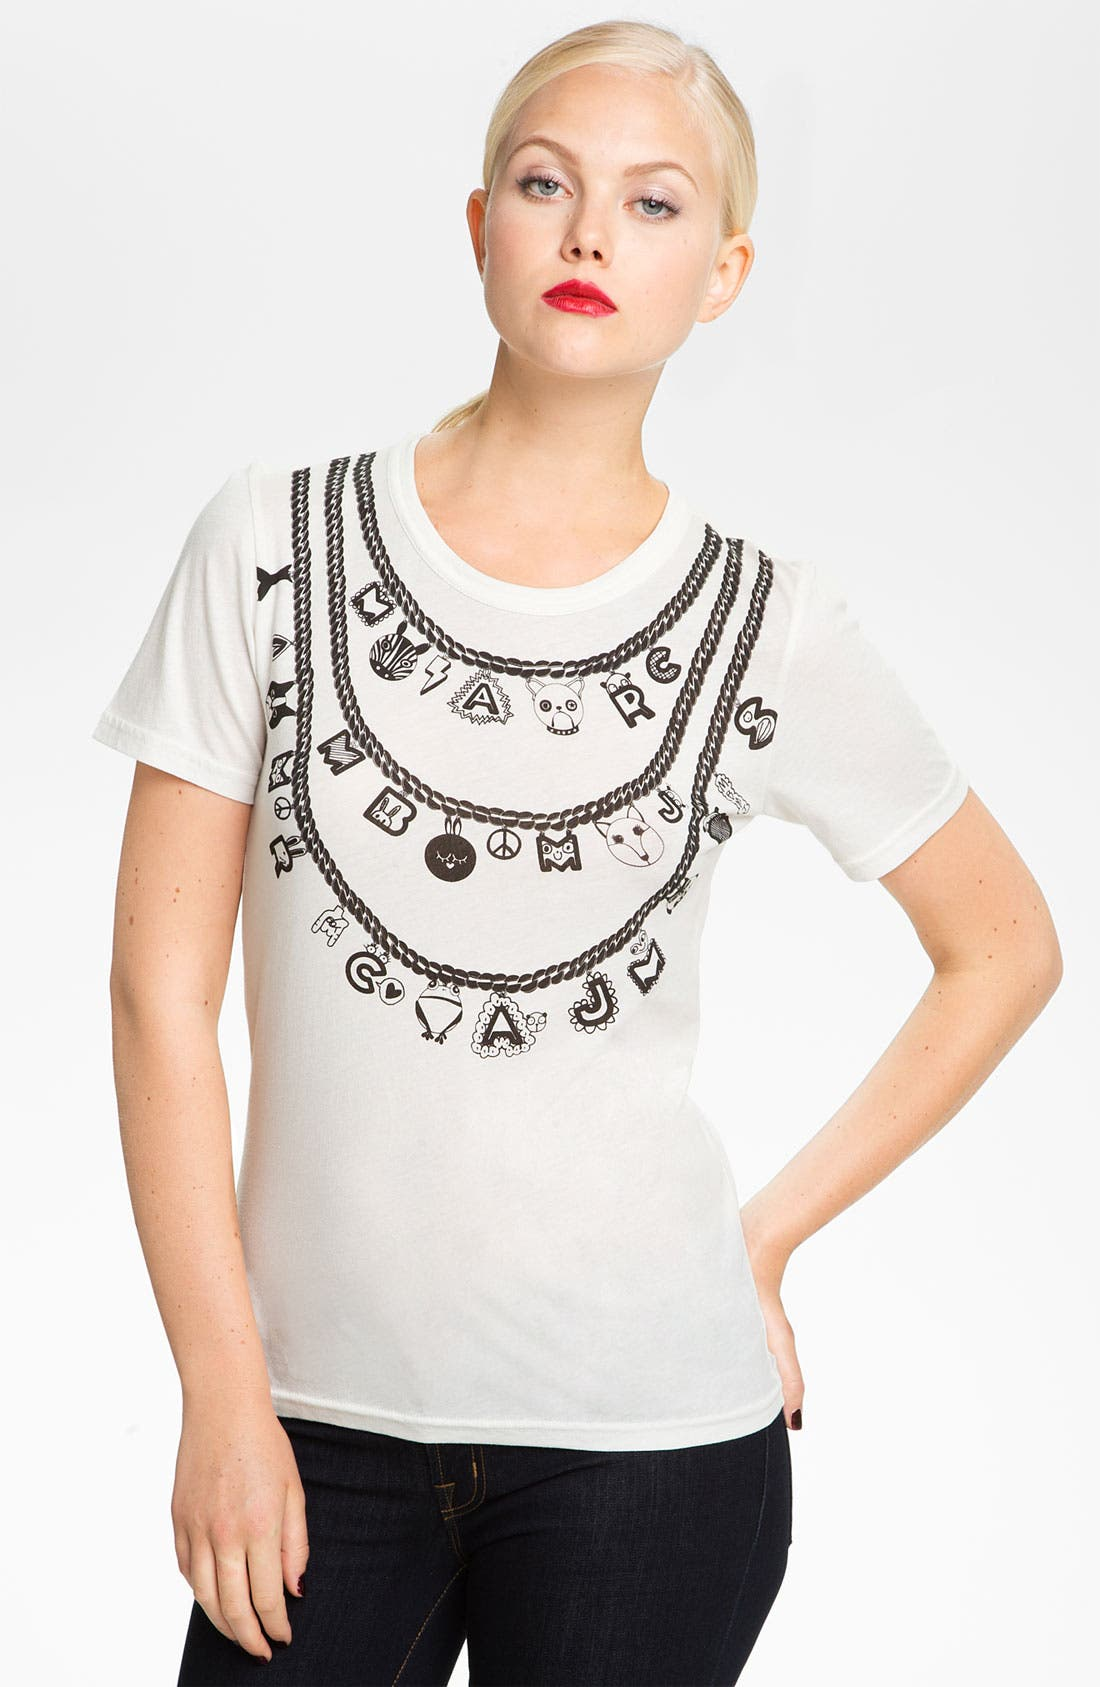 Main Image - MARC BY MARC JACOBS 'Dreamy' Necklace Tee